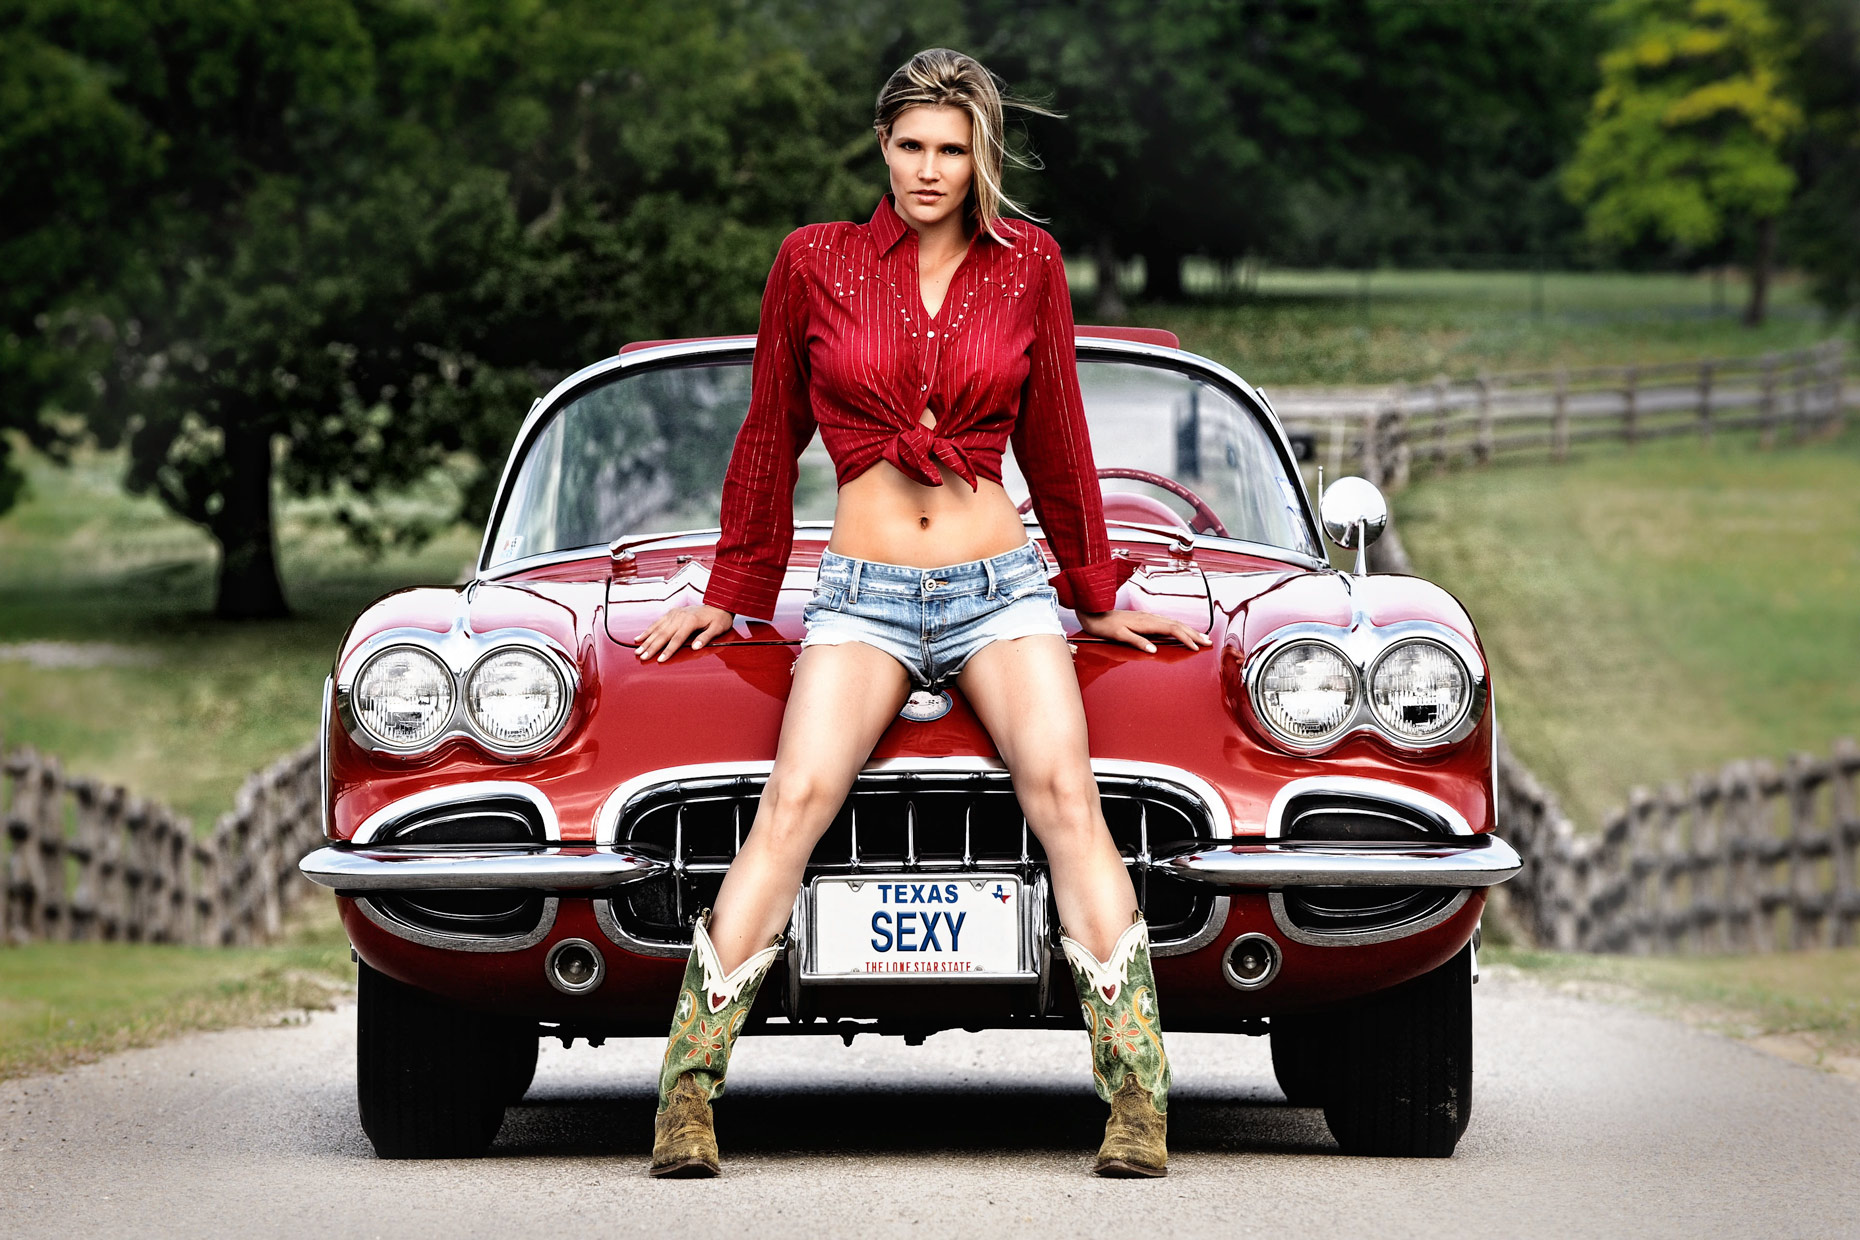 Girl with corvette - Dallas, Texas Editorial photographer Kevin Brown